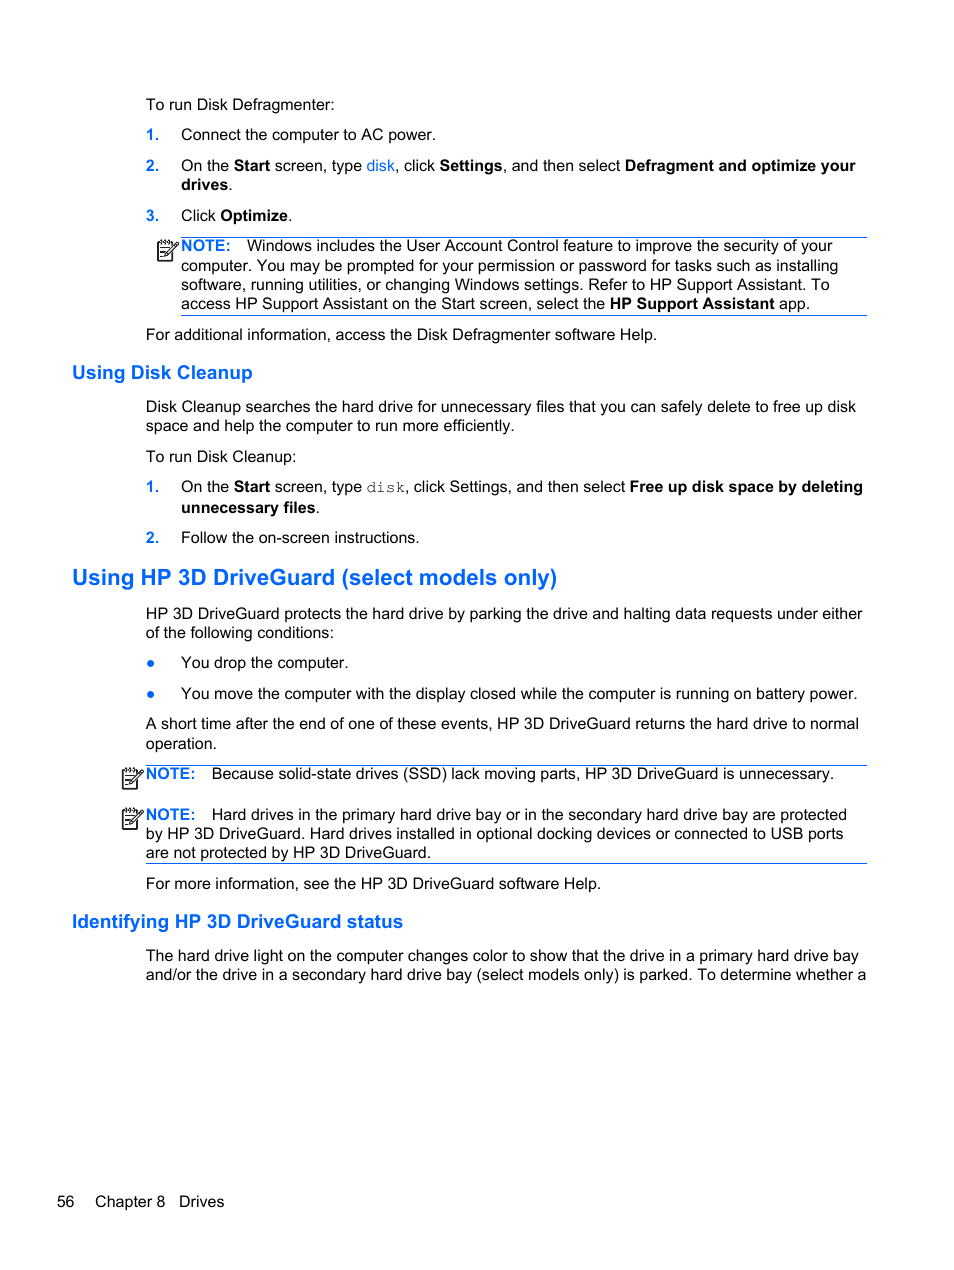 Using disk cleanup, Using hp 3d driveguard (select models only),  Identifying hp 3d driveguard status | HP ProBook 450 G1 Notebook PC User  Manual | Page 66 / ...